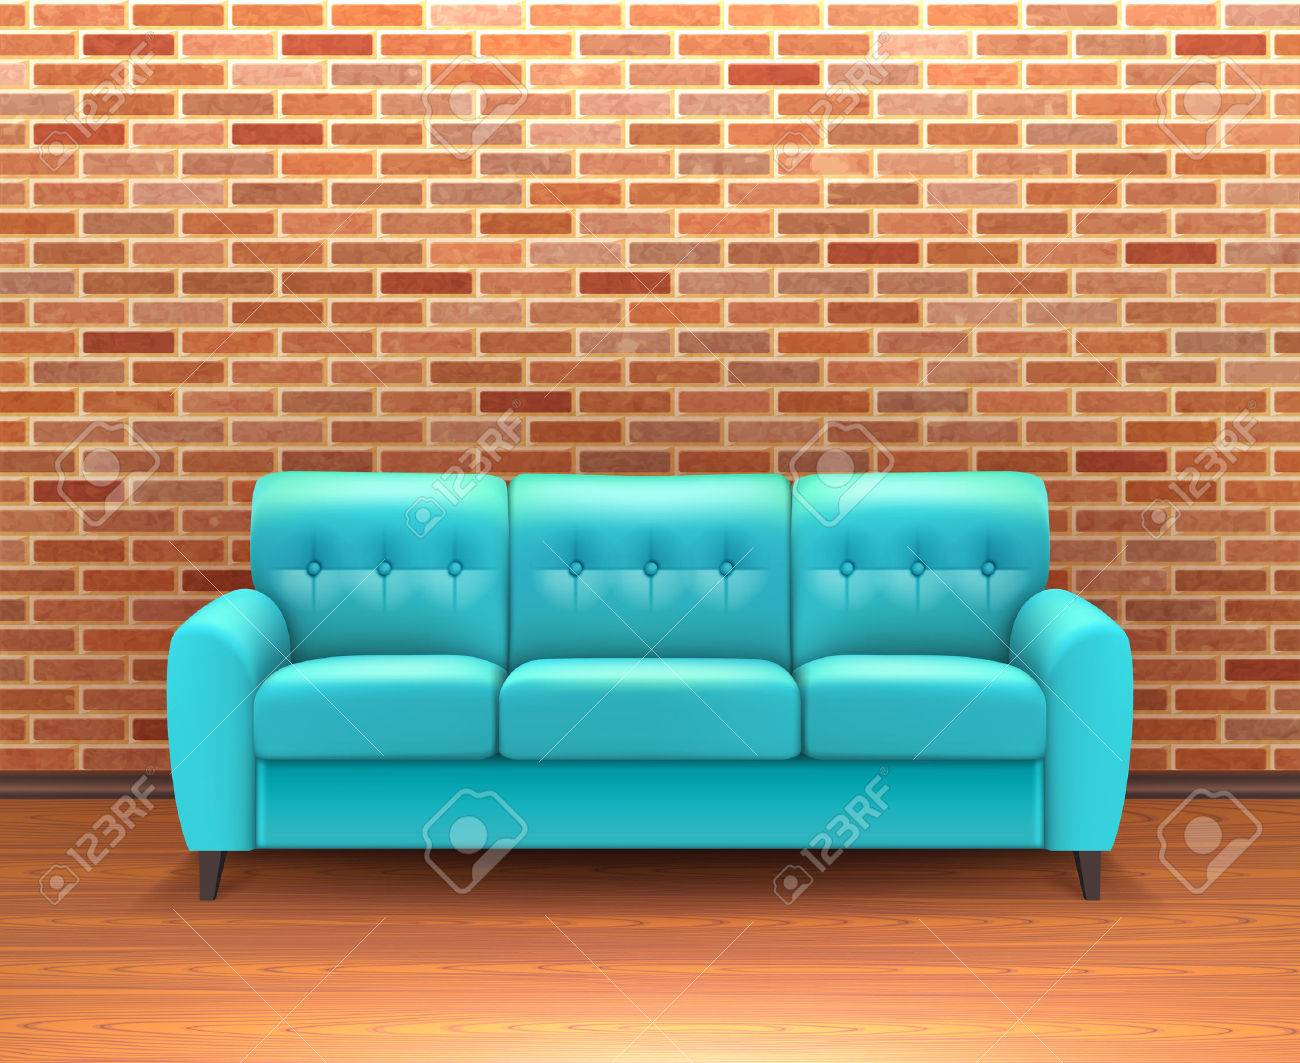 - Modern Interior Brick Wall Home Decoration And Design Ideas With